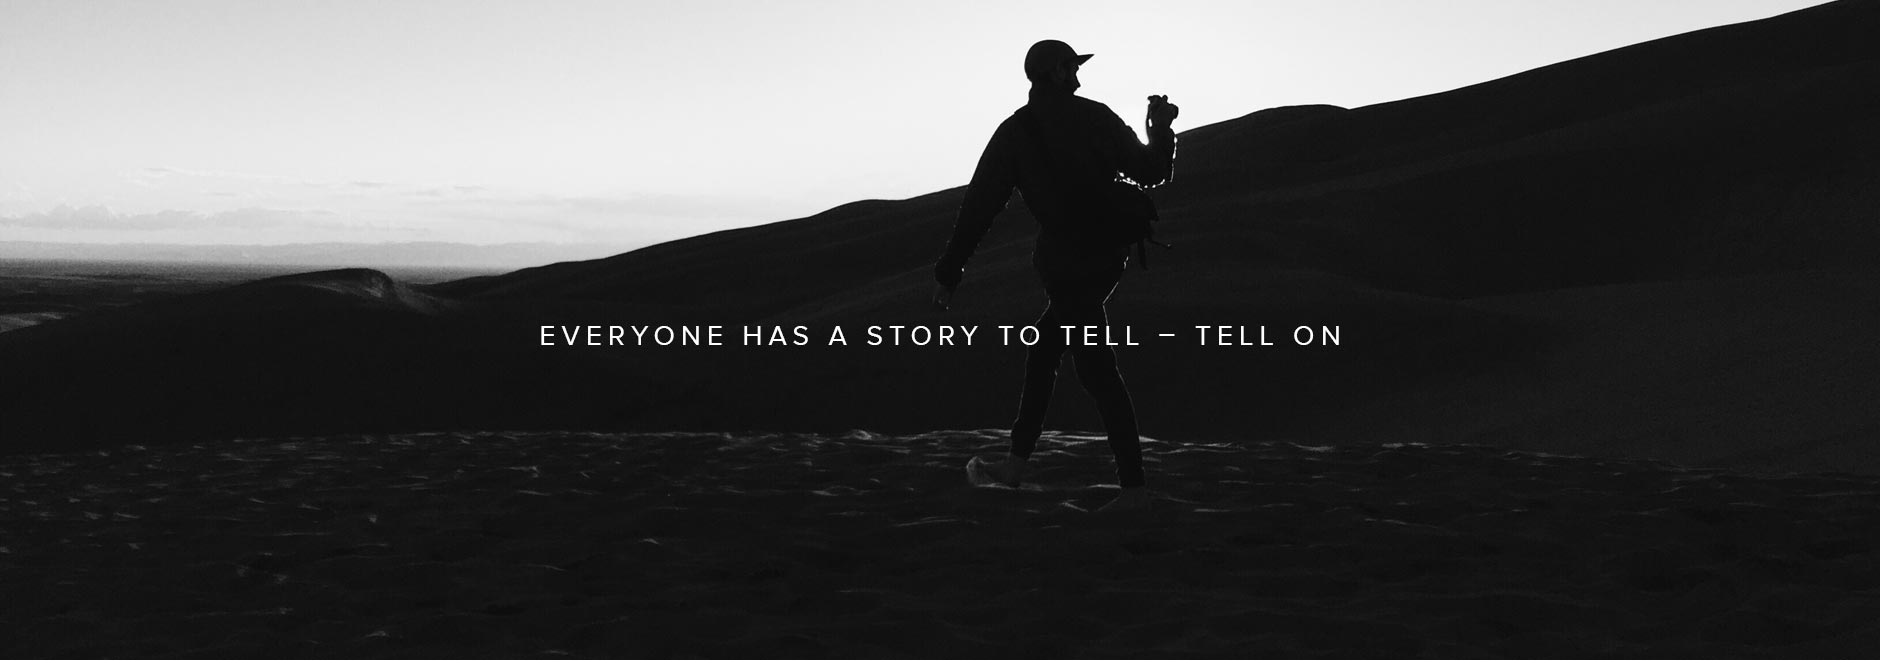 Everyone has a Story to Tell, Tell On.